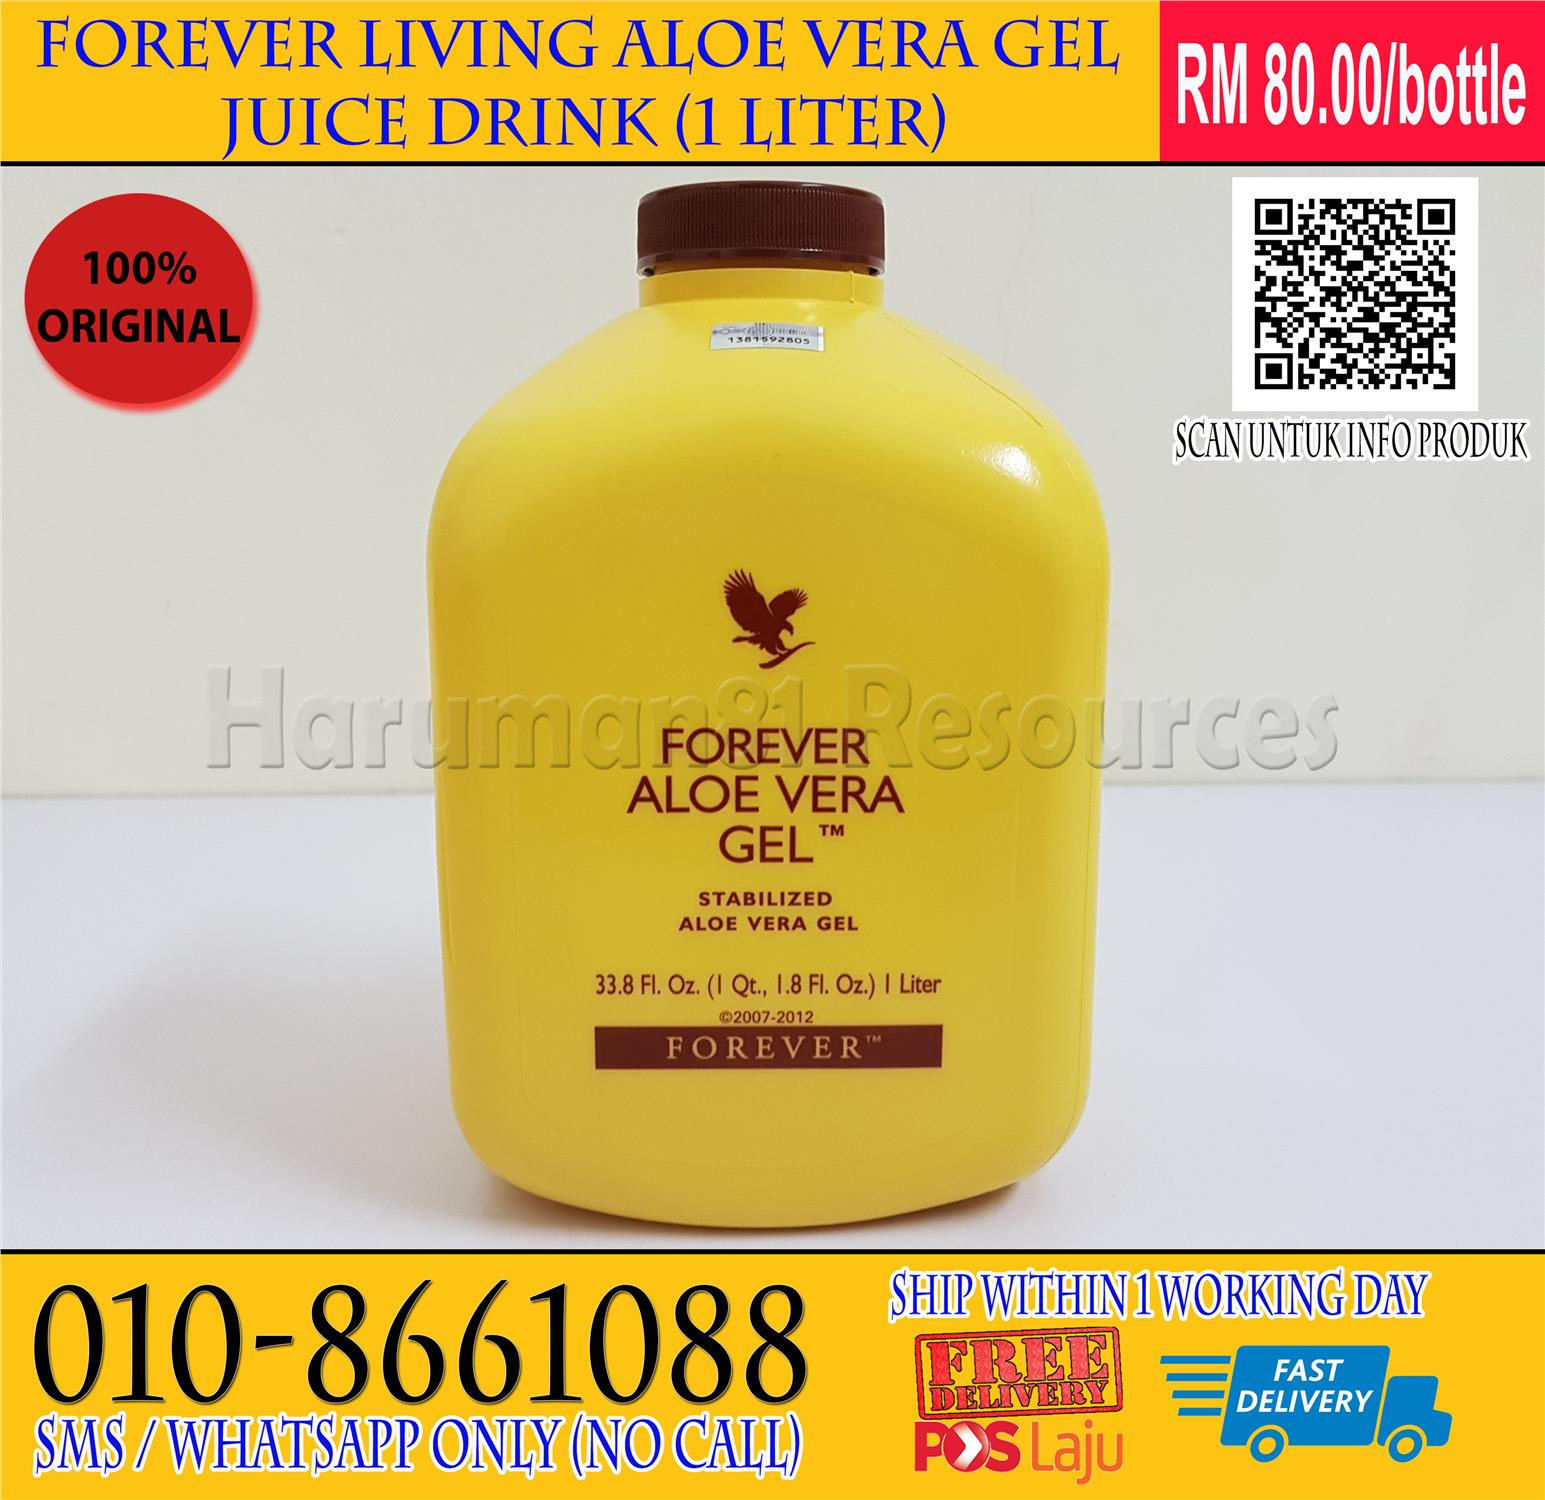 FREE POS - FOREVER LIVING ALOE VERA GEL (JUICE DRINK 1L) 100% ORIGINAL